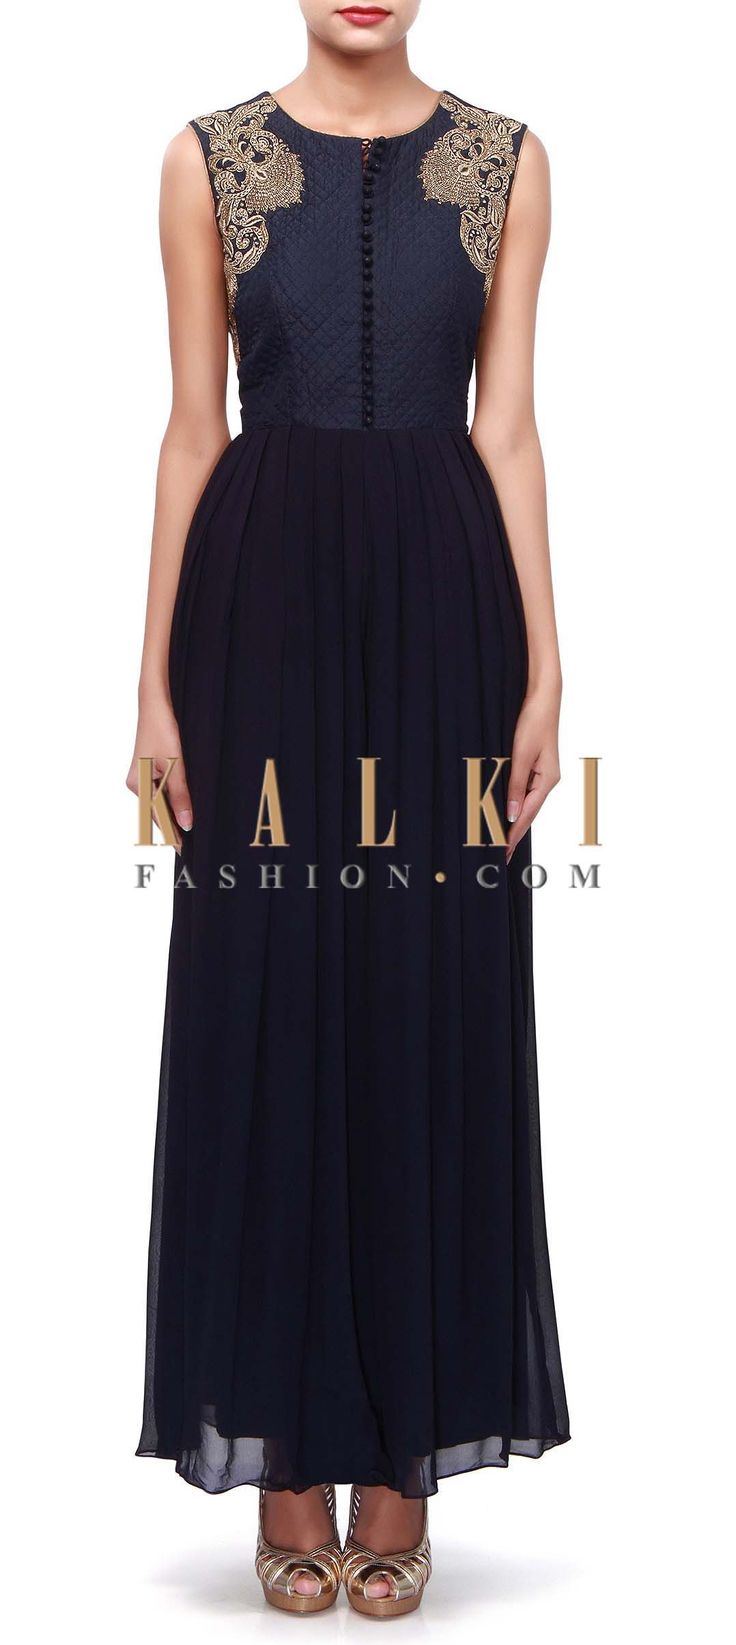 Buy Online from the link below. We ship worldwide (Free Shipping over US$100). Product SKU - 272243. Product Link - http://www.kalkifashion.com/navy-blue-jumpsuit-adorn-in-zardosi-embroidery-only-on-kalki.html